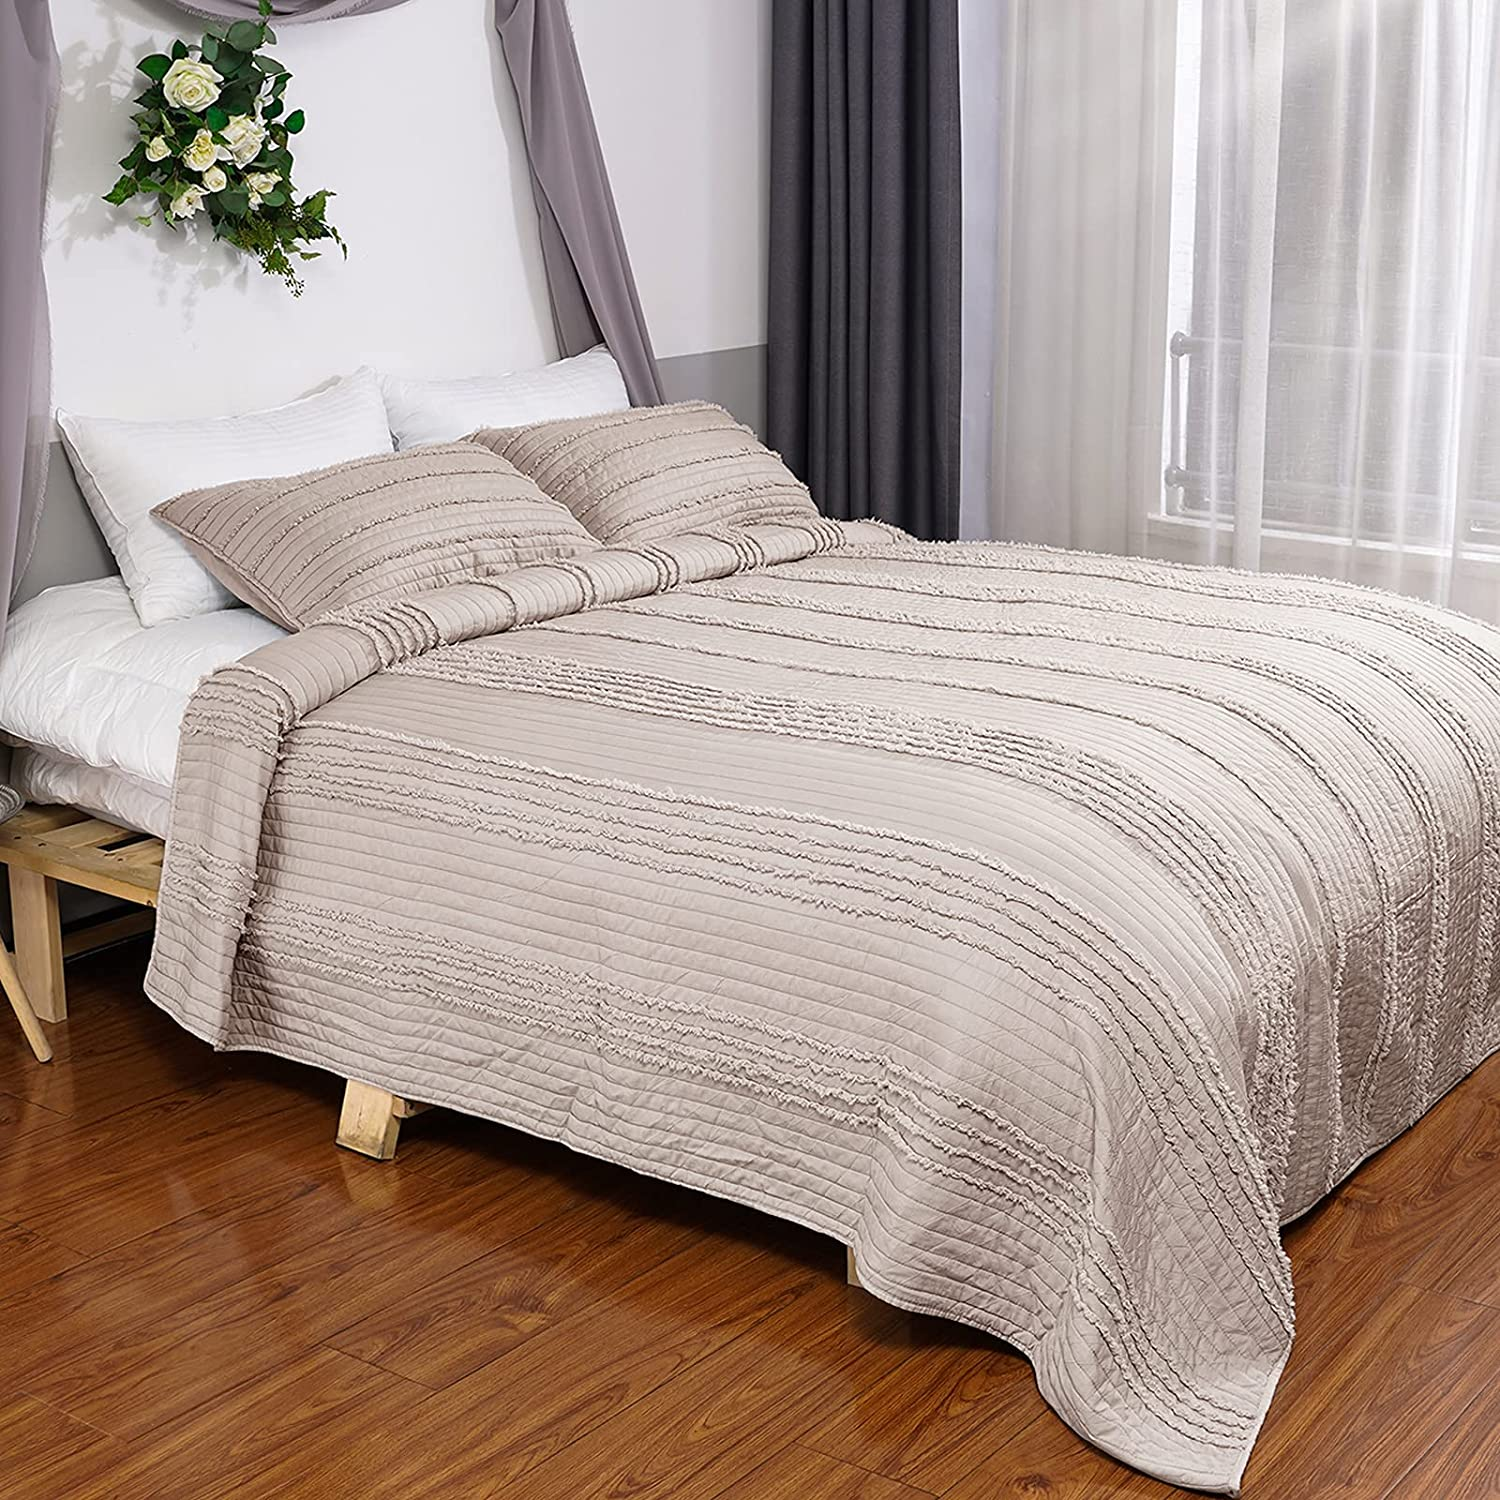 COMSLE Quilt Set Full Queen Max 59% OFF Size Coverlet Pieces - Soft 3 Bombing free shipping Super